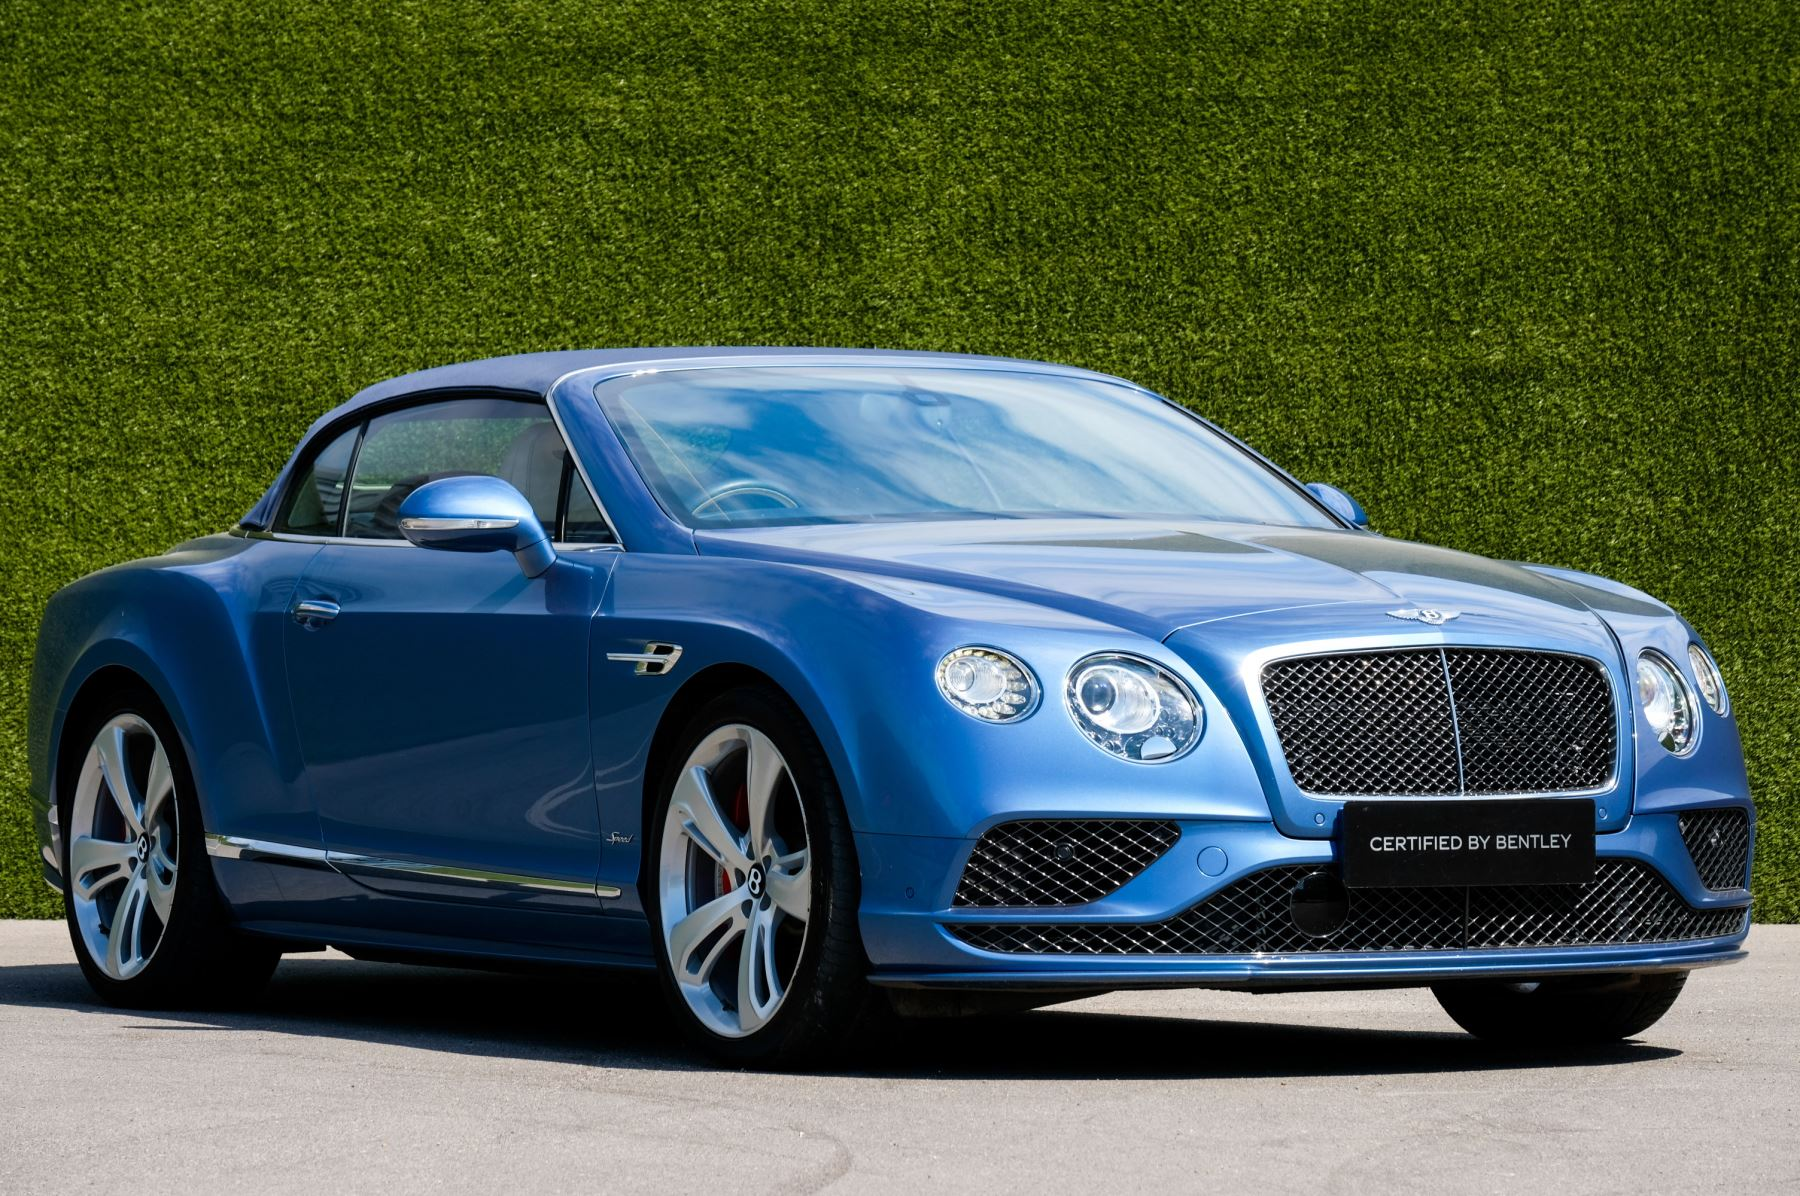 Bentley Continental GTC 6.0 W12 [635] Speed 2dr - 21 Inch Directional Sports Alloy Wheels Automatic Convertible (2016)